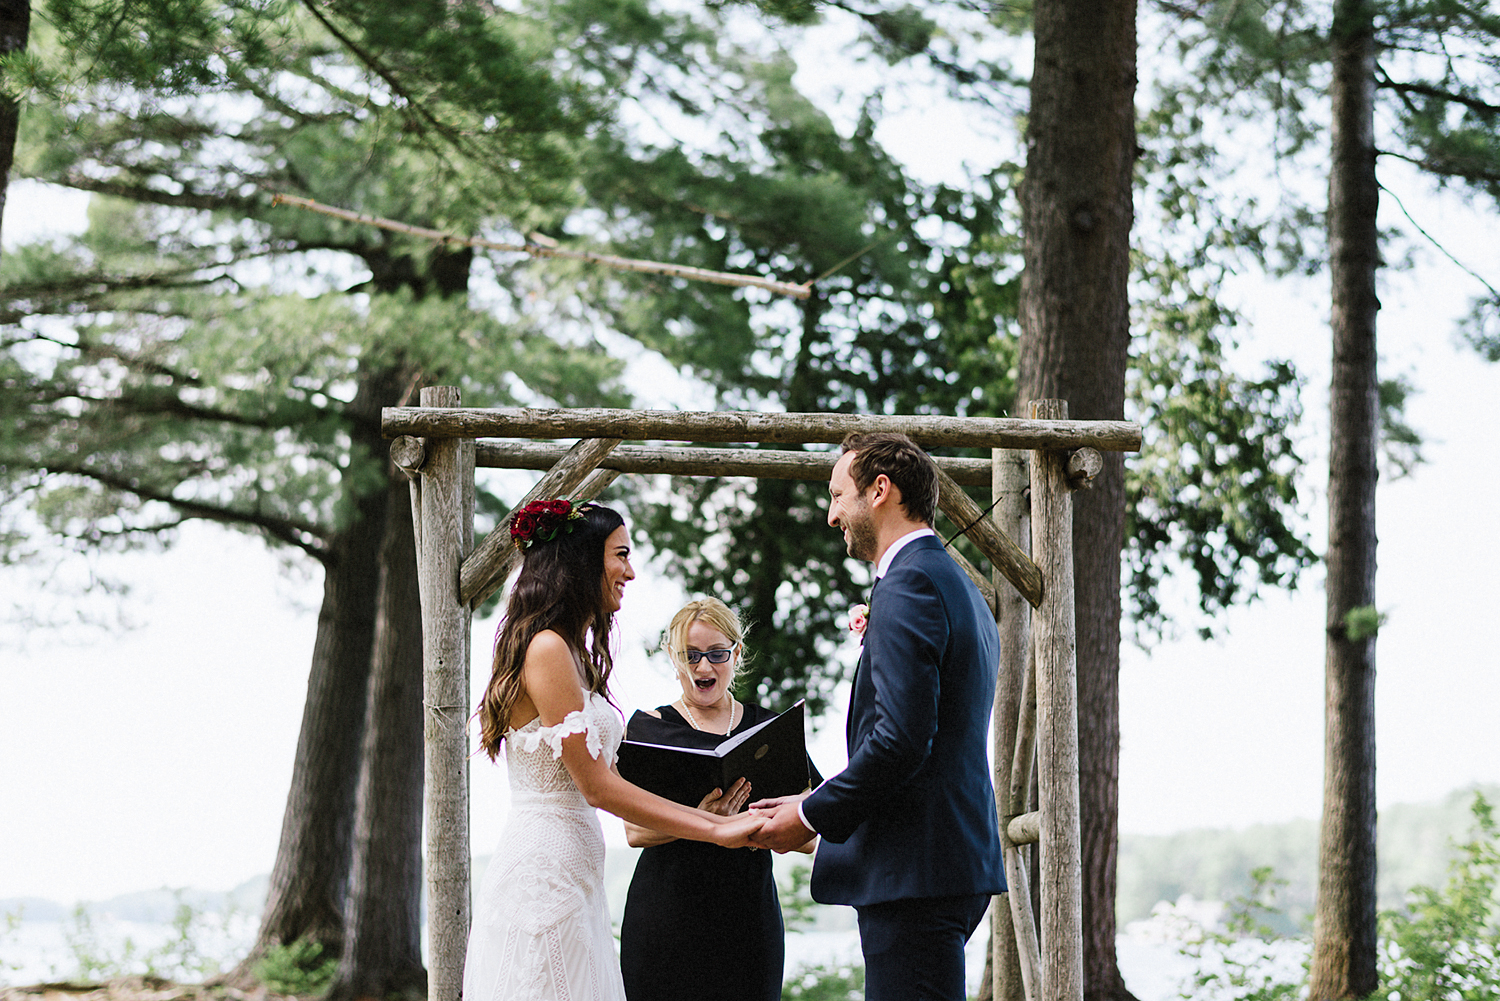 Muskoka-Cottage-Wedding-Photography-Photographer_Photojournalistic-Documentary-Wedding-Photography_Vintage-Bride-Forest-Wedding-Ceremony-Venue-Bride-Groom-Laughing-Crying.jpg